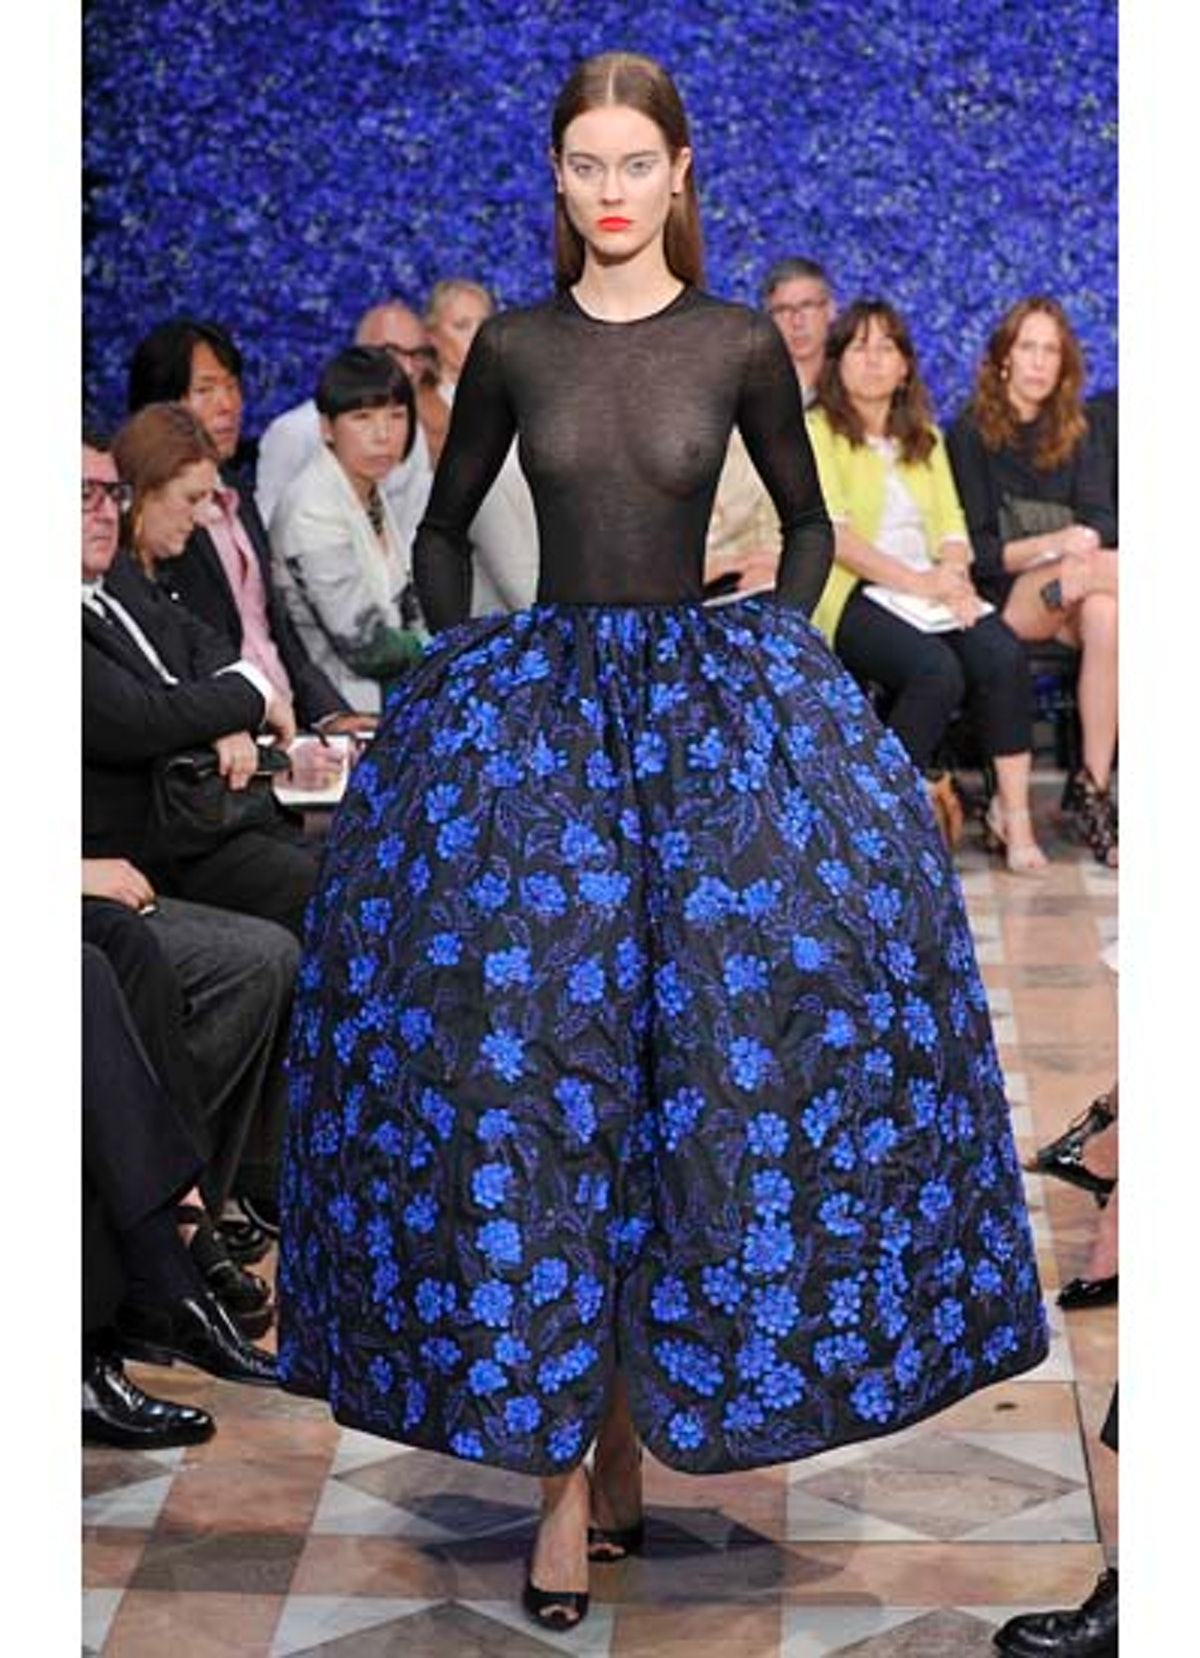 fass-dior-couture-2012-runway-48-v.jpg